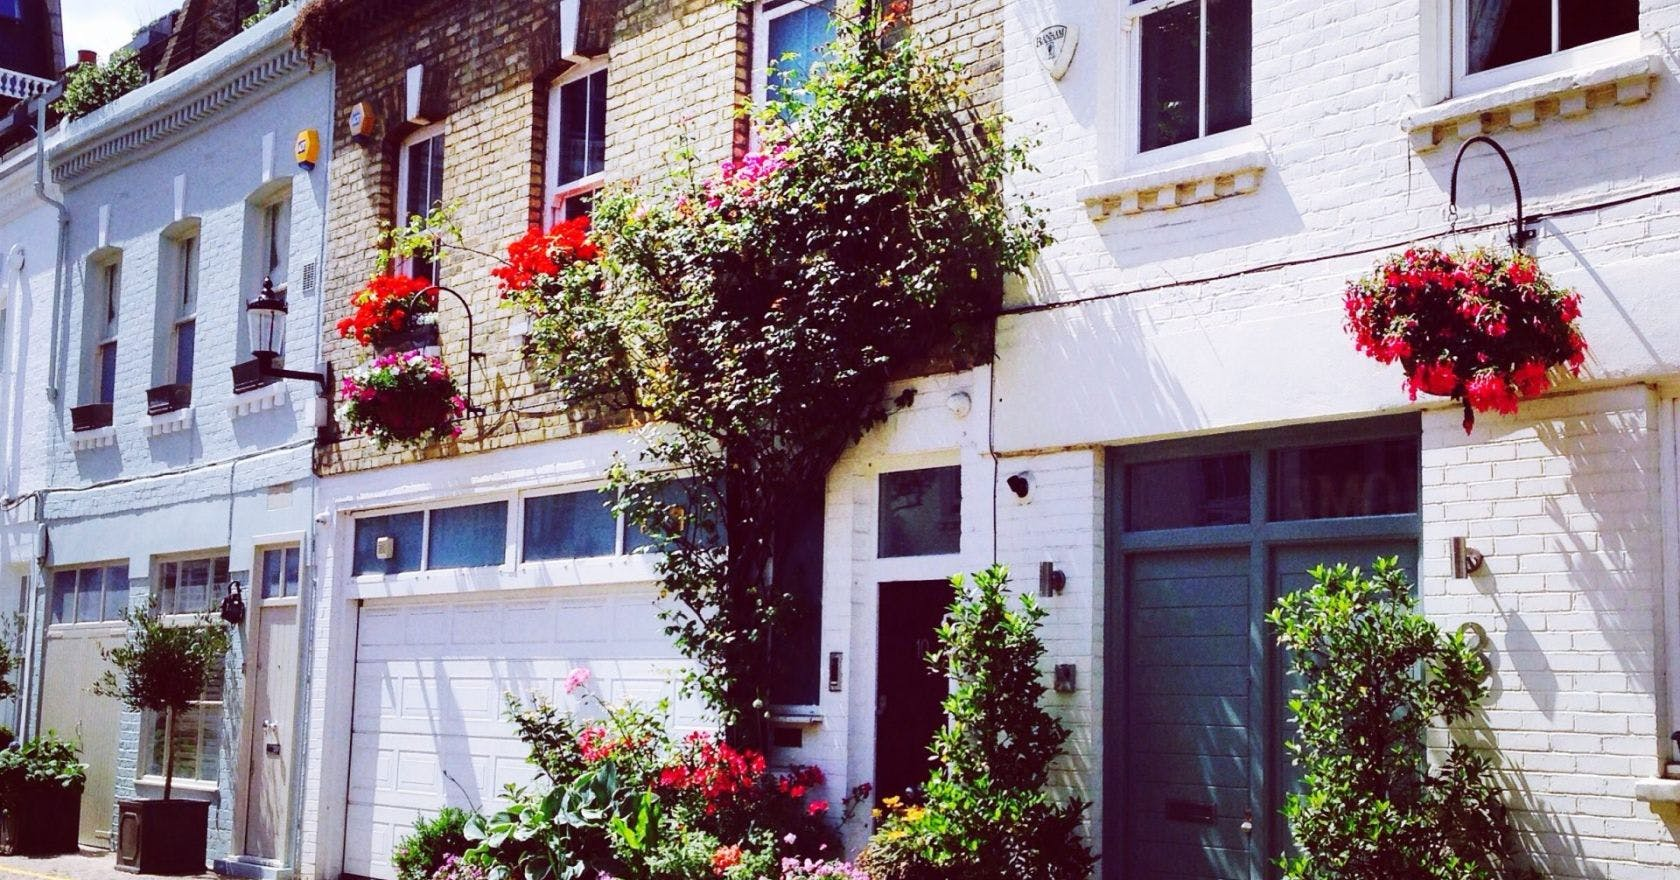 Londoners, this area has been named best in the capital